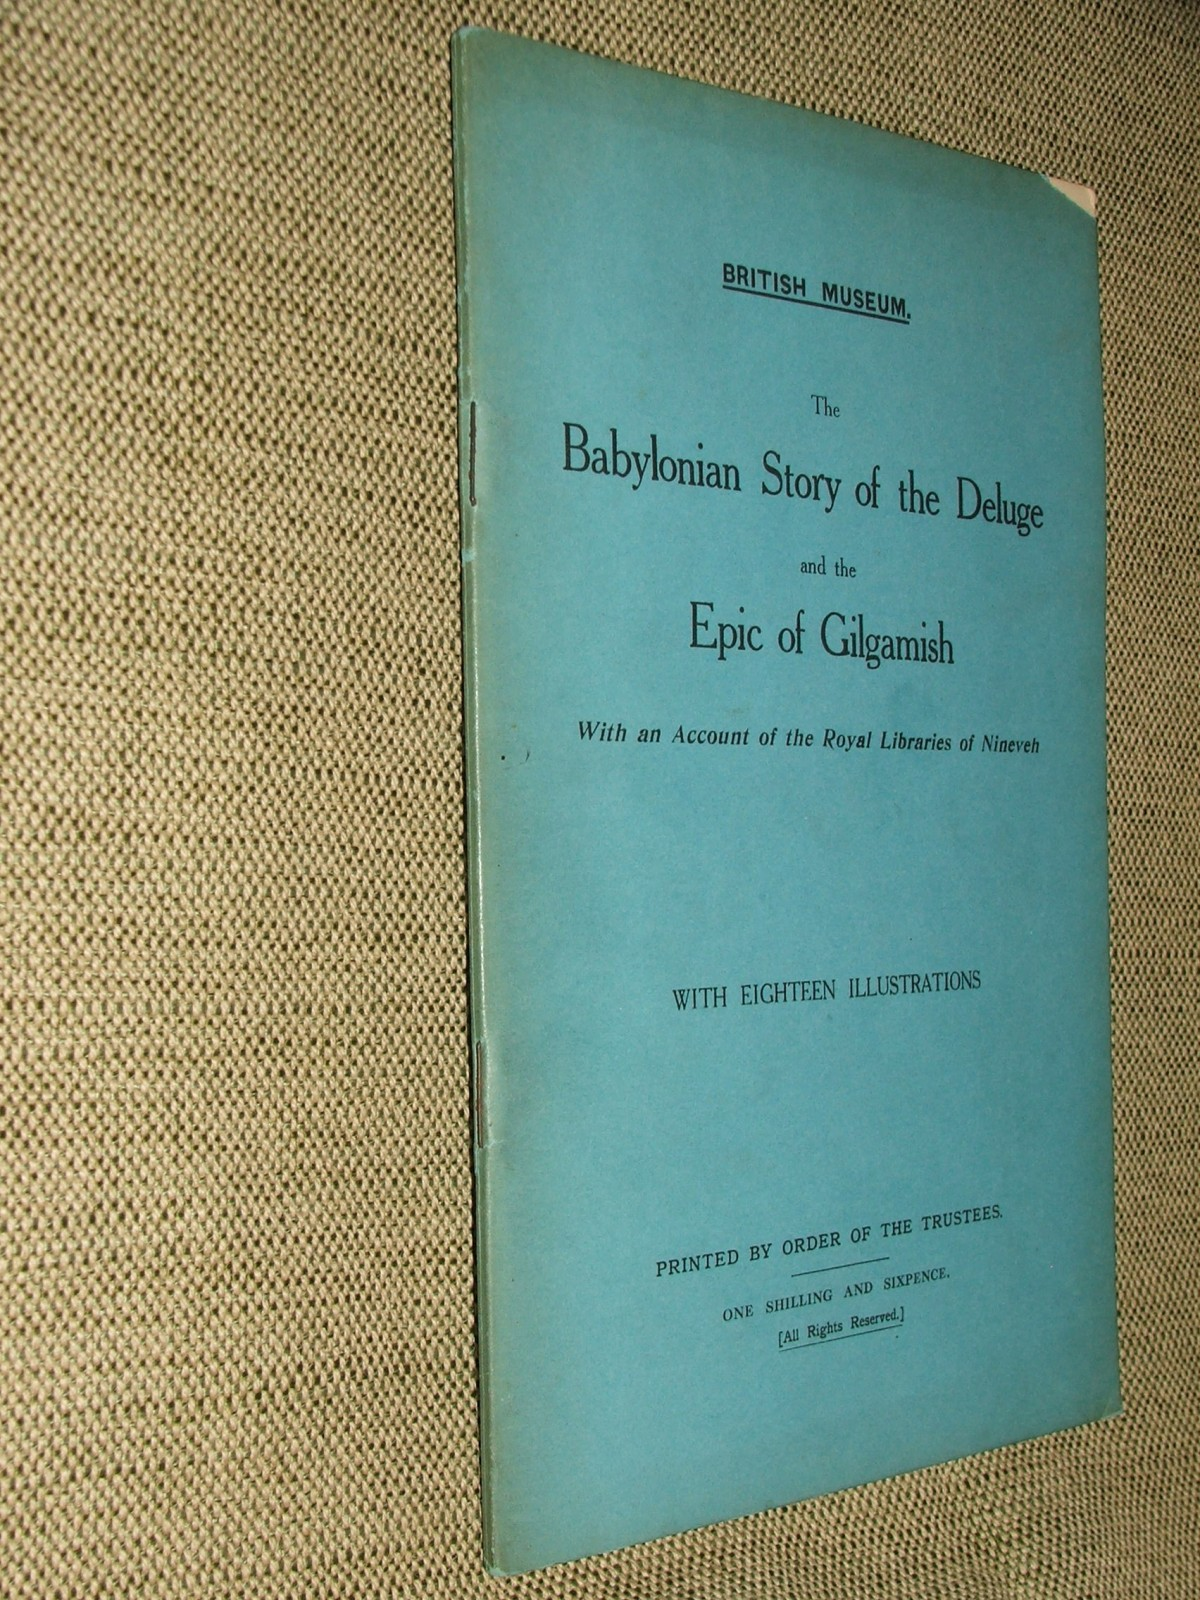 BRITISH MUSEUM.: The Babylonian Story of the Deluge and the Epic of Gilgamish